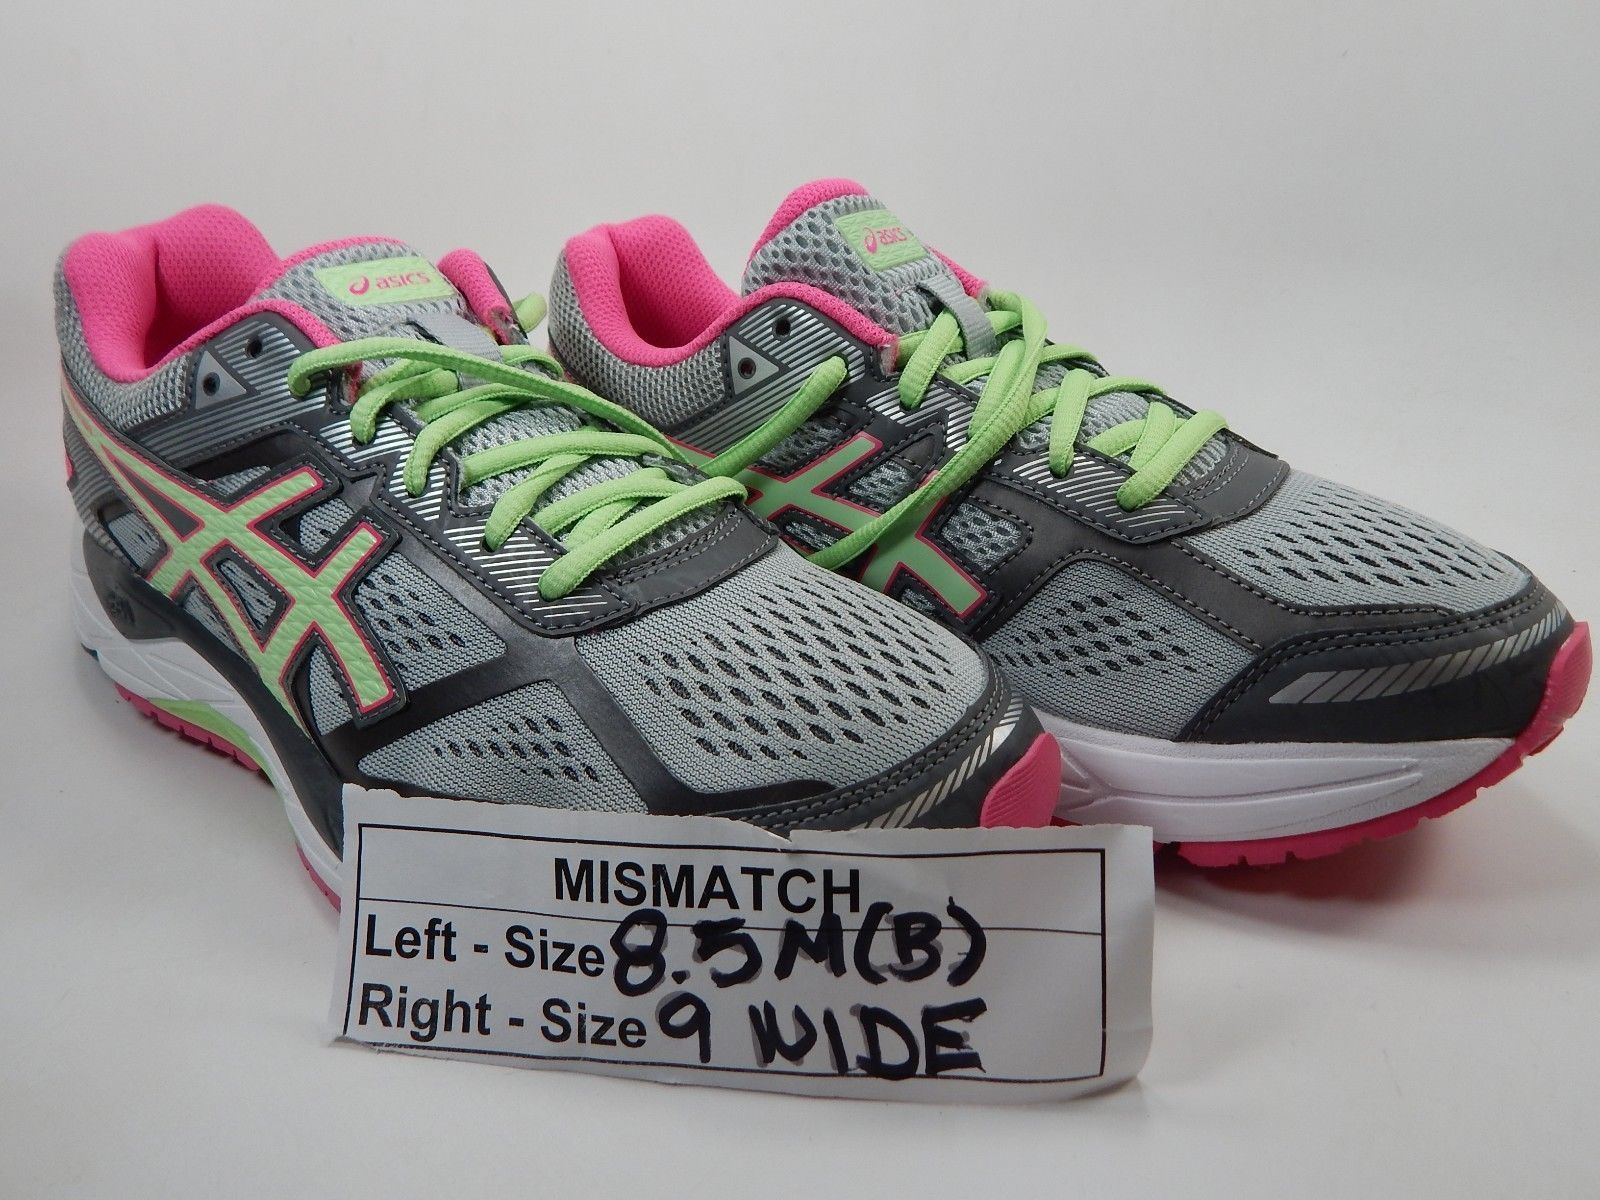 MISMATCH Asics Gel Foundation 12 Sz 8.5 M B Left & 9 D WIDE Right Women's Shoes